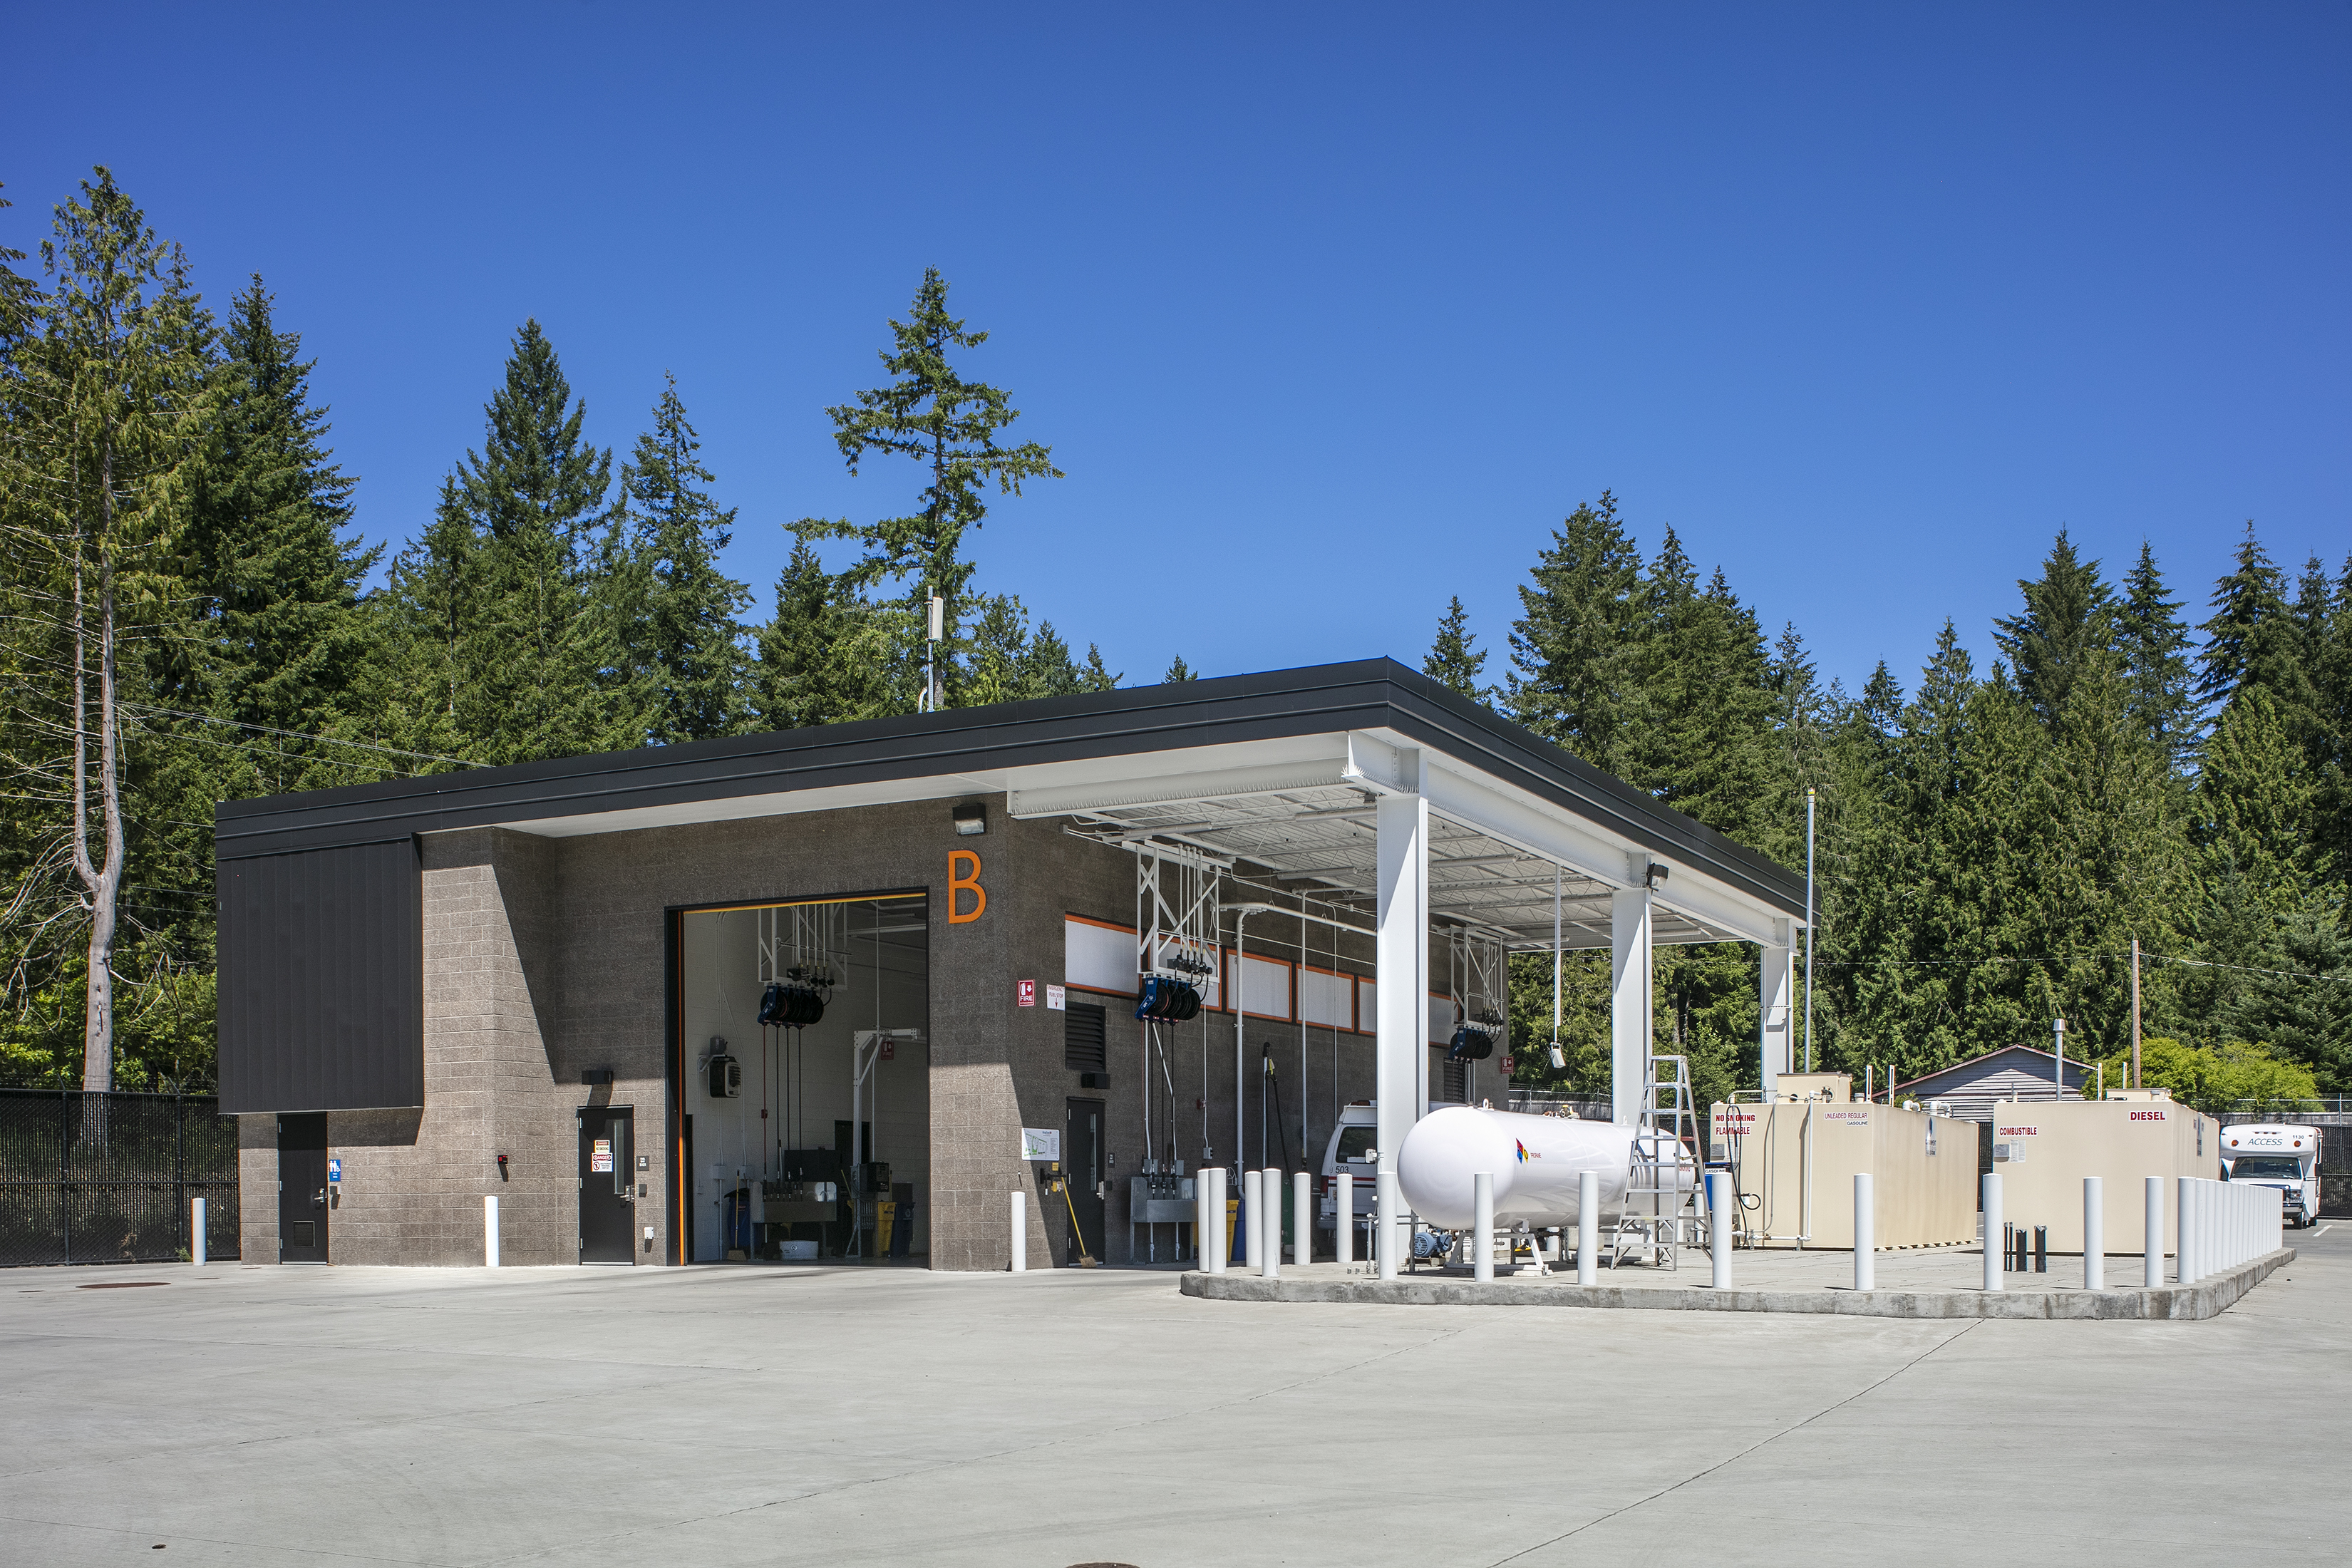 Kitsap Transit North Base and Park and Ride 9